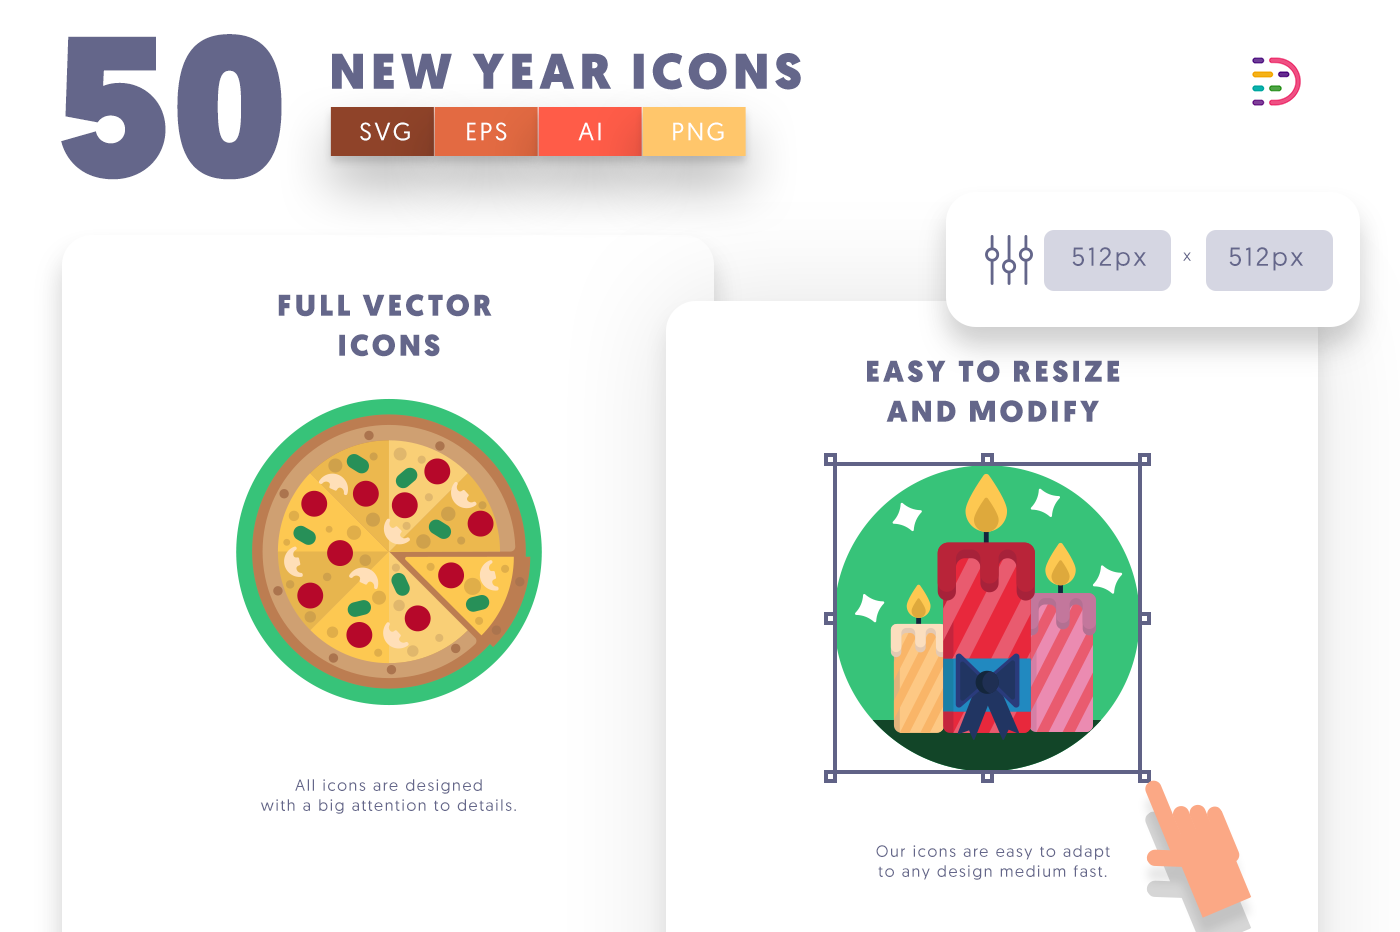 Full vector 50 New Year Icons